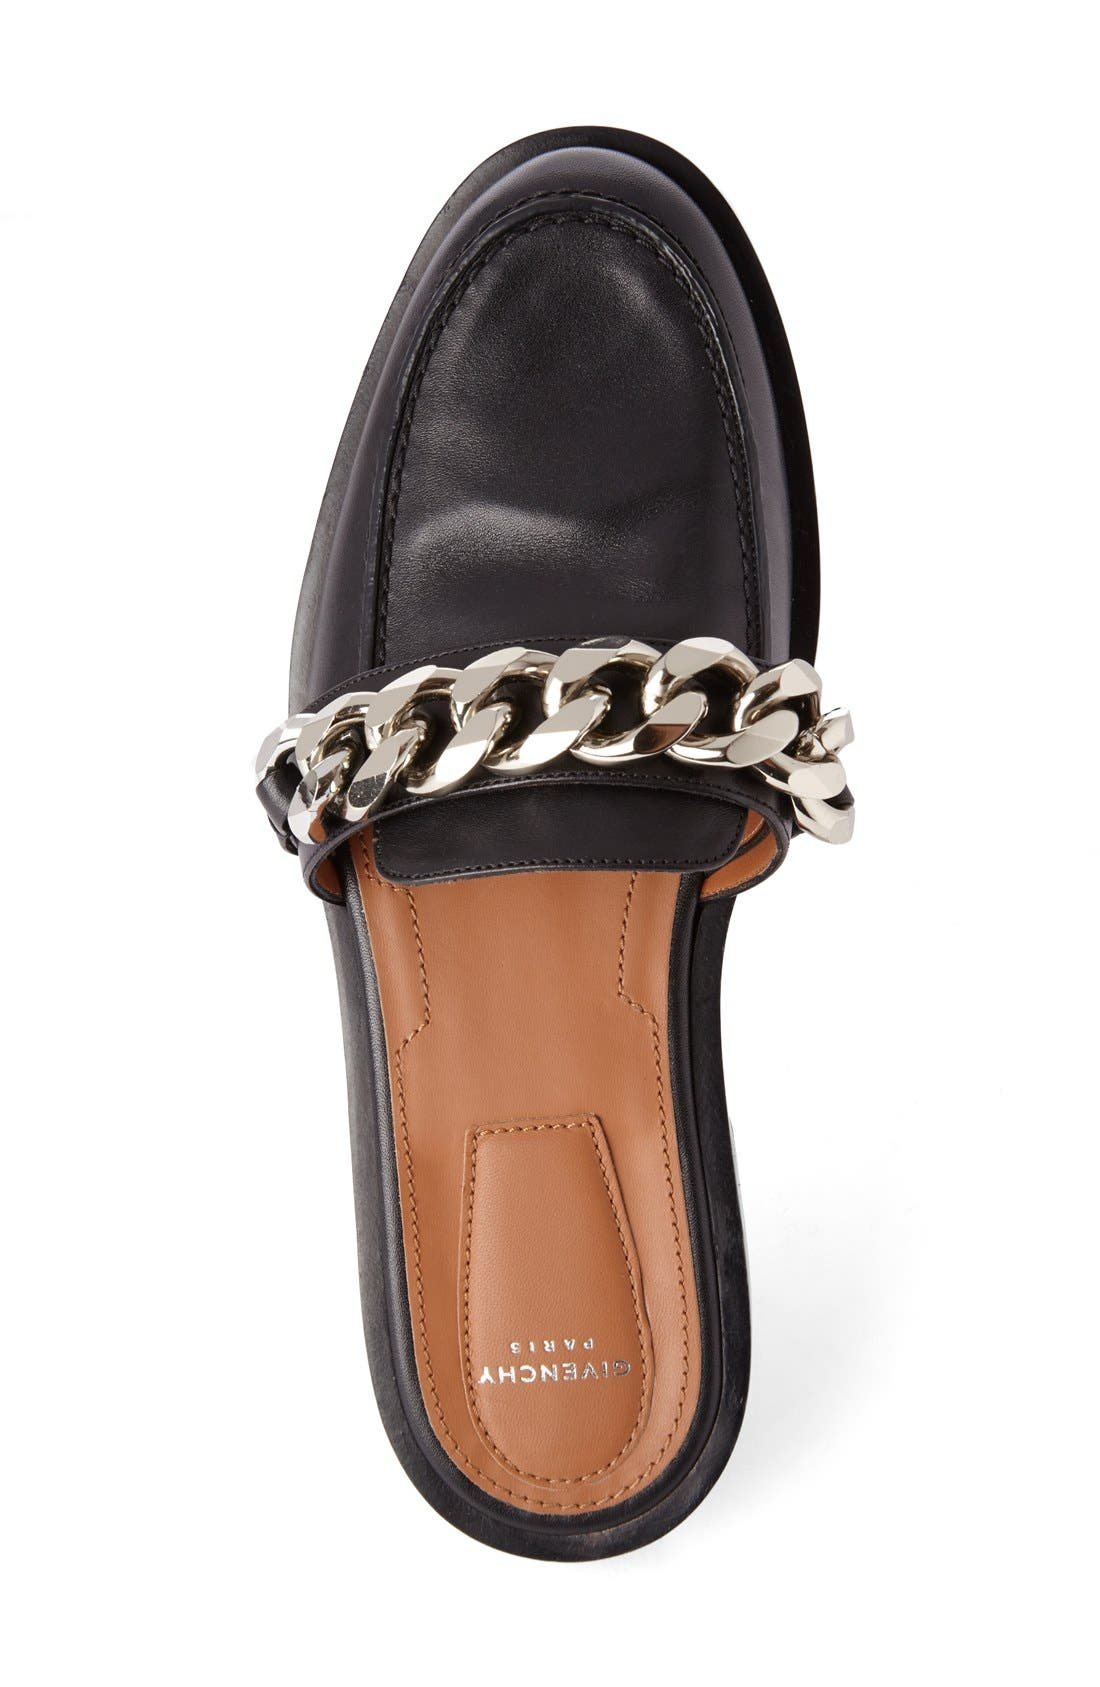 Alternate Image 3  - Givenchy Chain Strap Loafer Mule (Women)